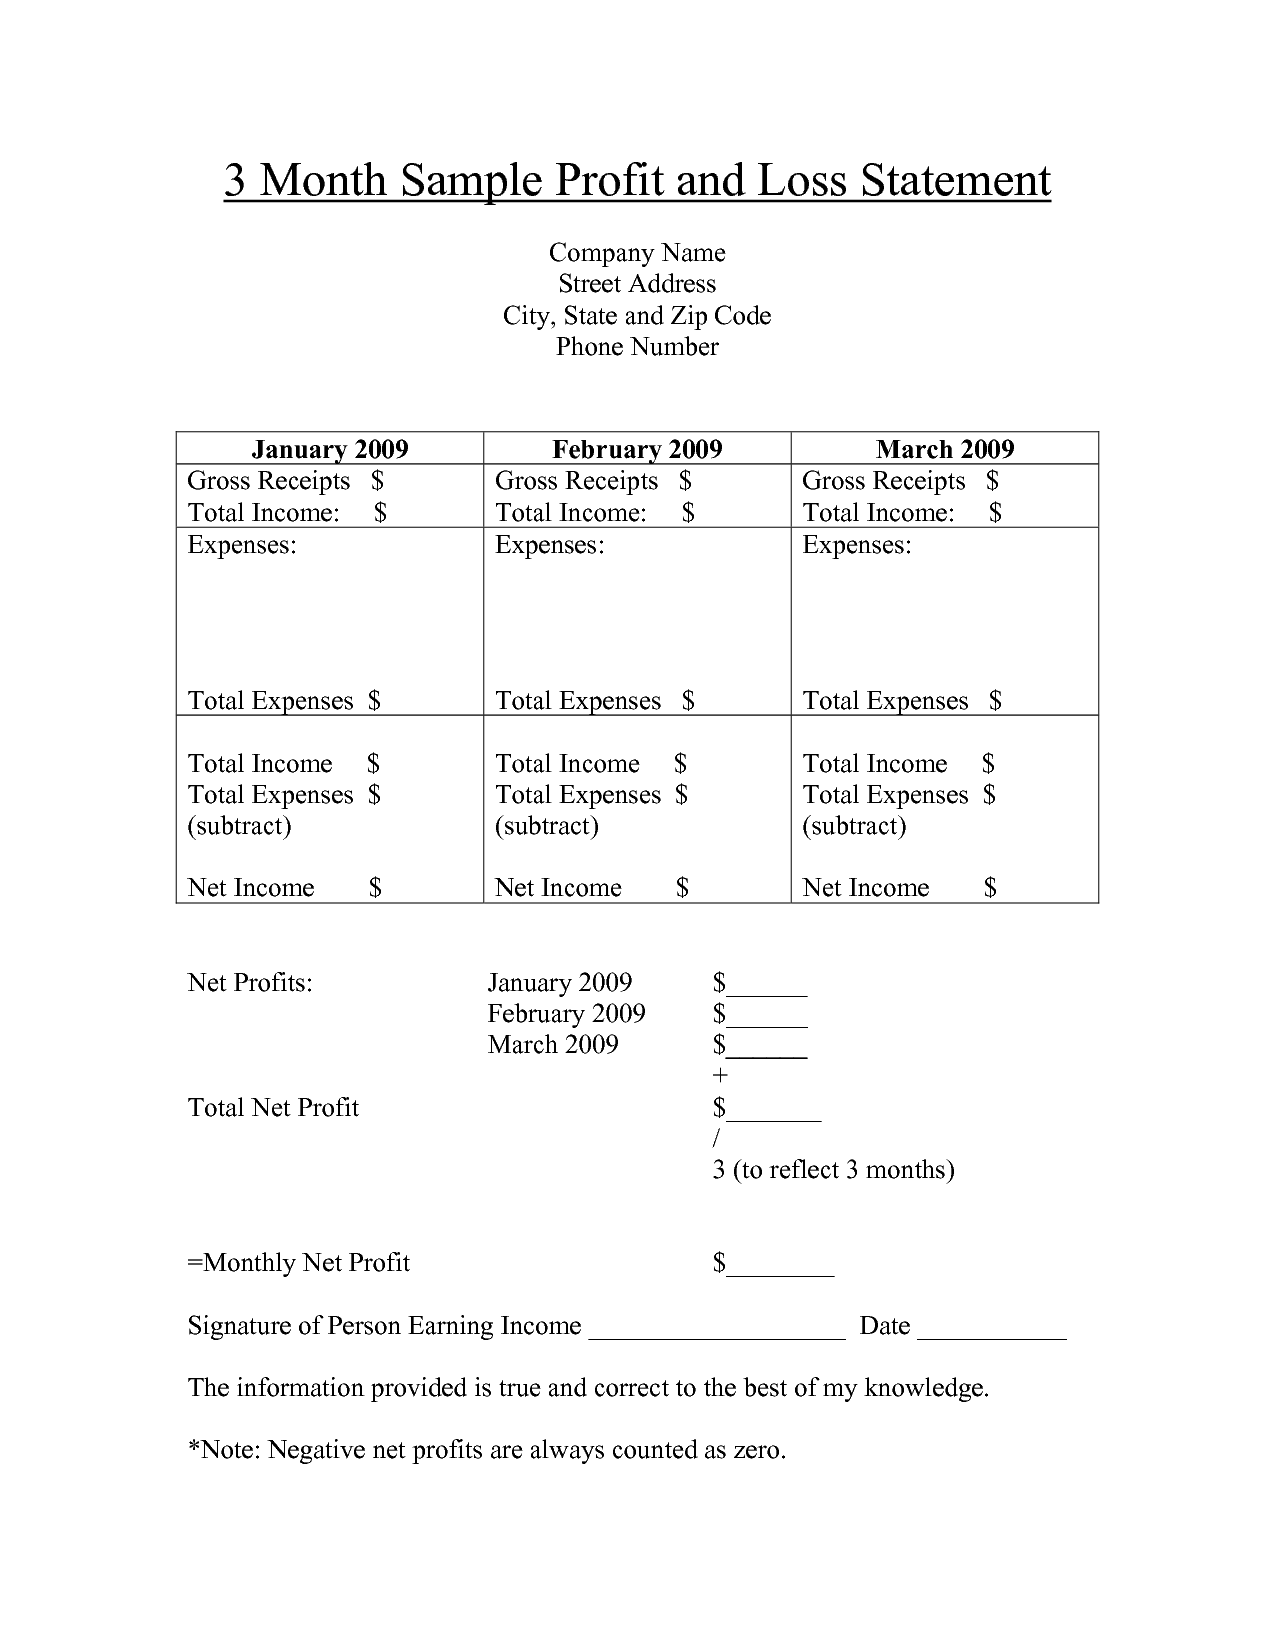 Free Printable Profit and Loss Statement Form for Home Care Bing – Free Profit and Loss Statement Template